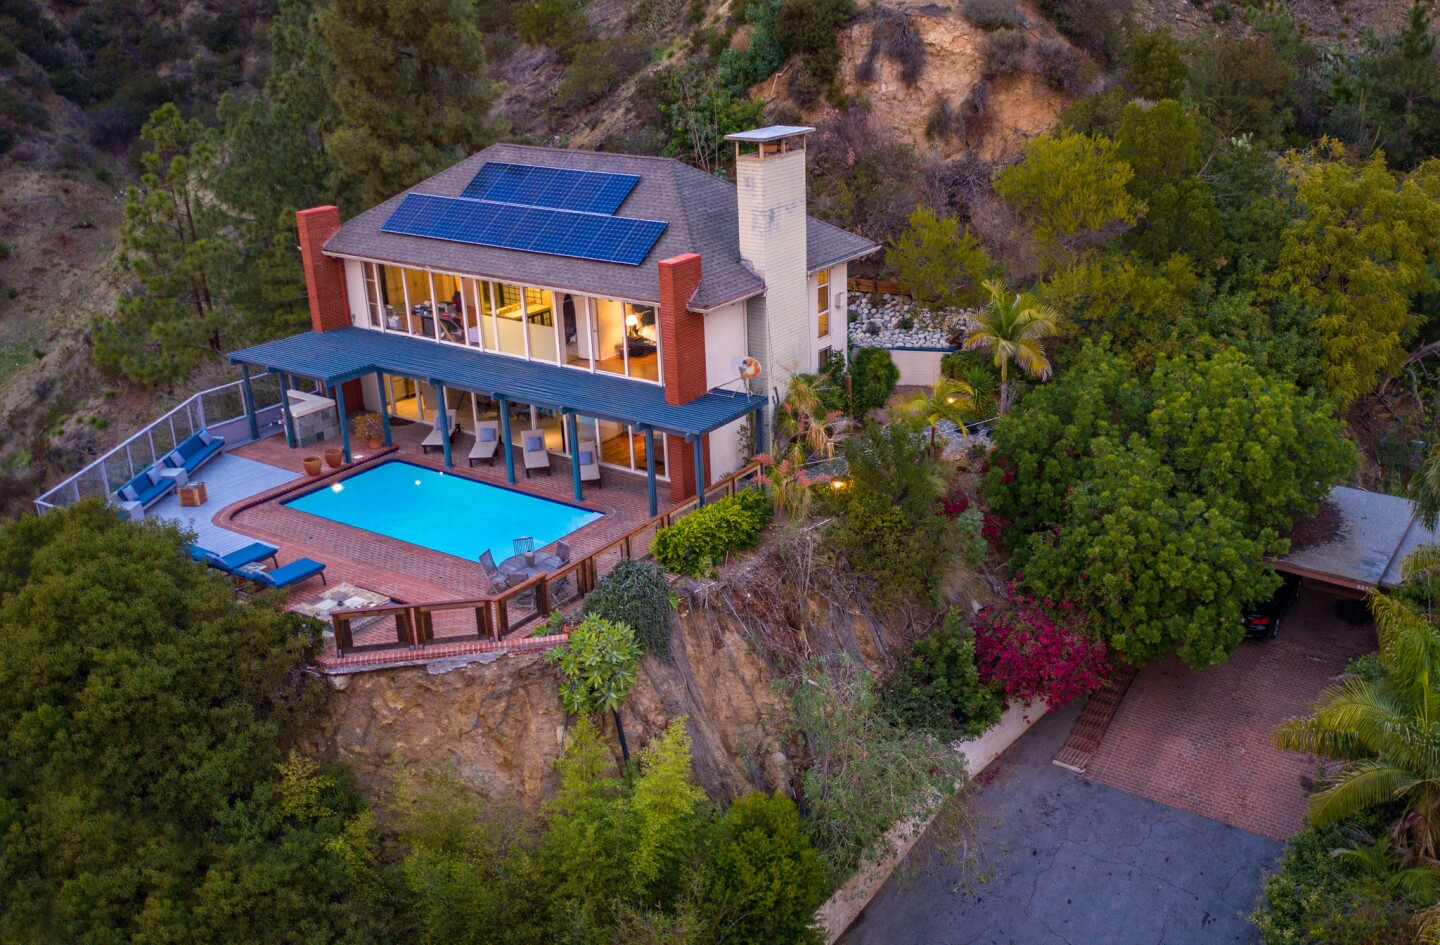 Jonathan Heap's home in the Hollywood Hills | Hot Property